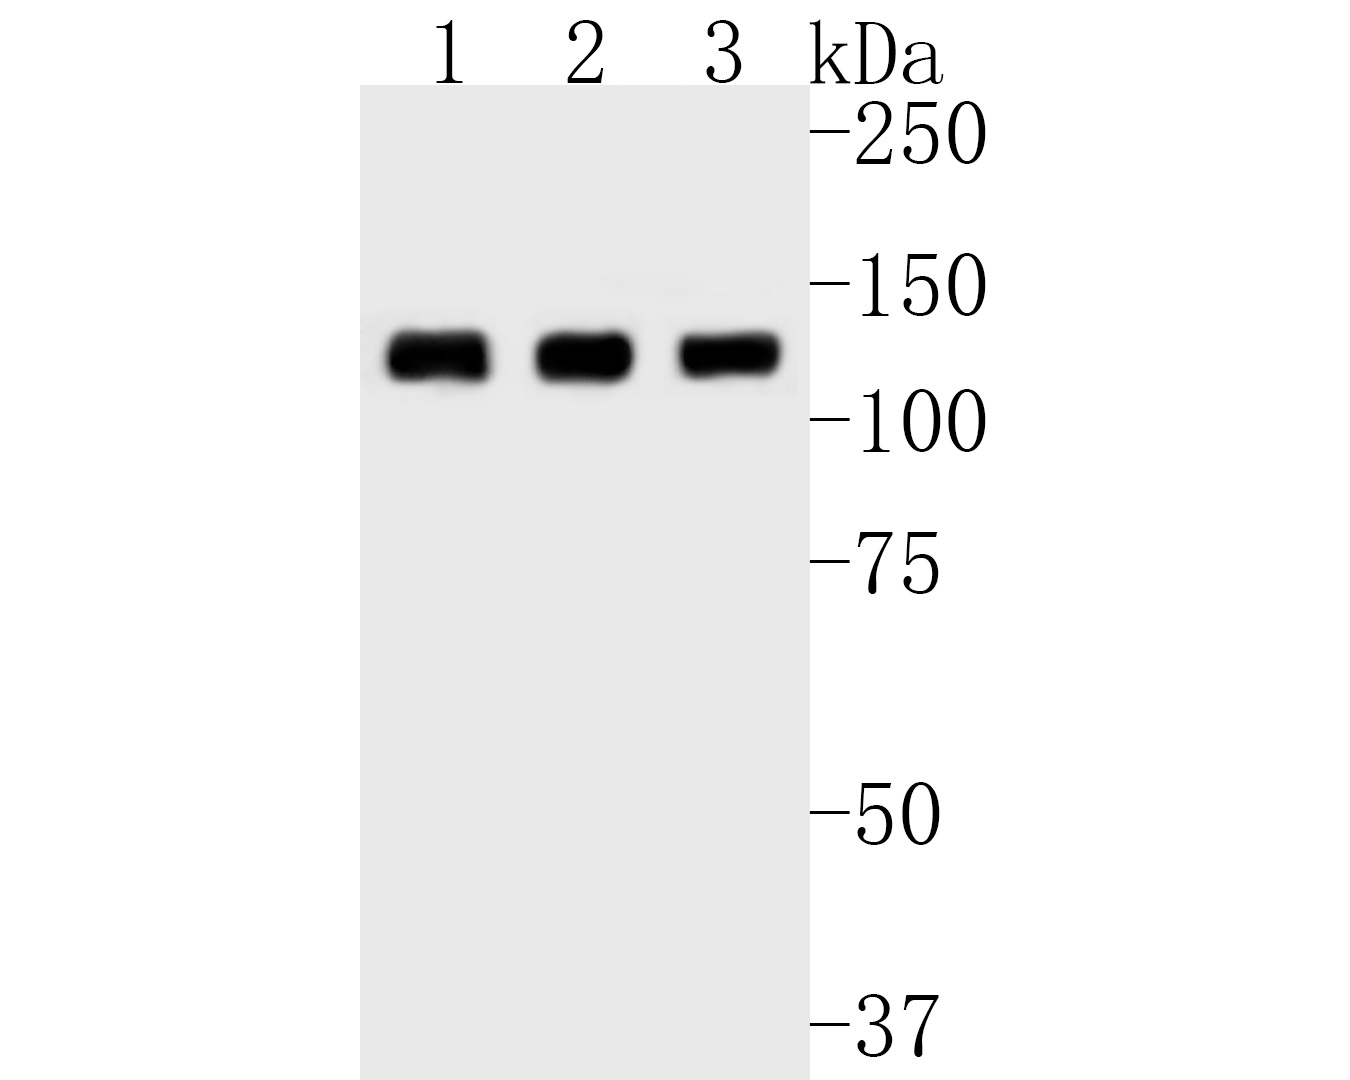 Western blot analysis of CC2D1A on different lysates. Proteins were transferred to a PVDF membrane and blocked with 5% BSA in PBS for 1 hour at room temperature. The primary antibody (ET7111-22, 1/1,000) was used in 5% BSA at room temperature for 2 hours. Goat Anti-Rabbit IgG - HRP Secondary Antibody (HA1001) at 1:5,000 dilution was used for 1 hour at room temperature.<br /> Positive control: <br /> Lane 1: MCF-7 cell lysate<br /> Lane 2: A431 cell lysate<br /> Lane 3: PC-12 cell lysate